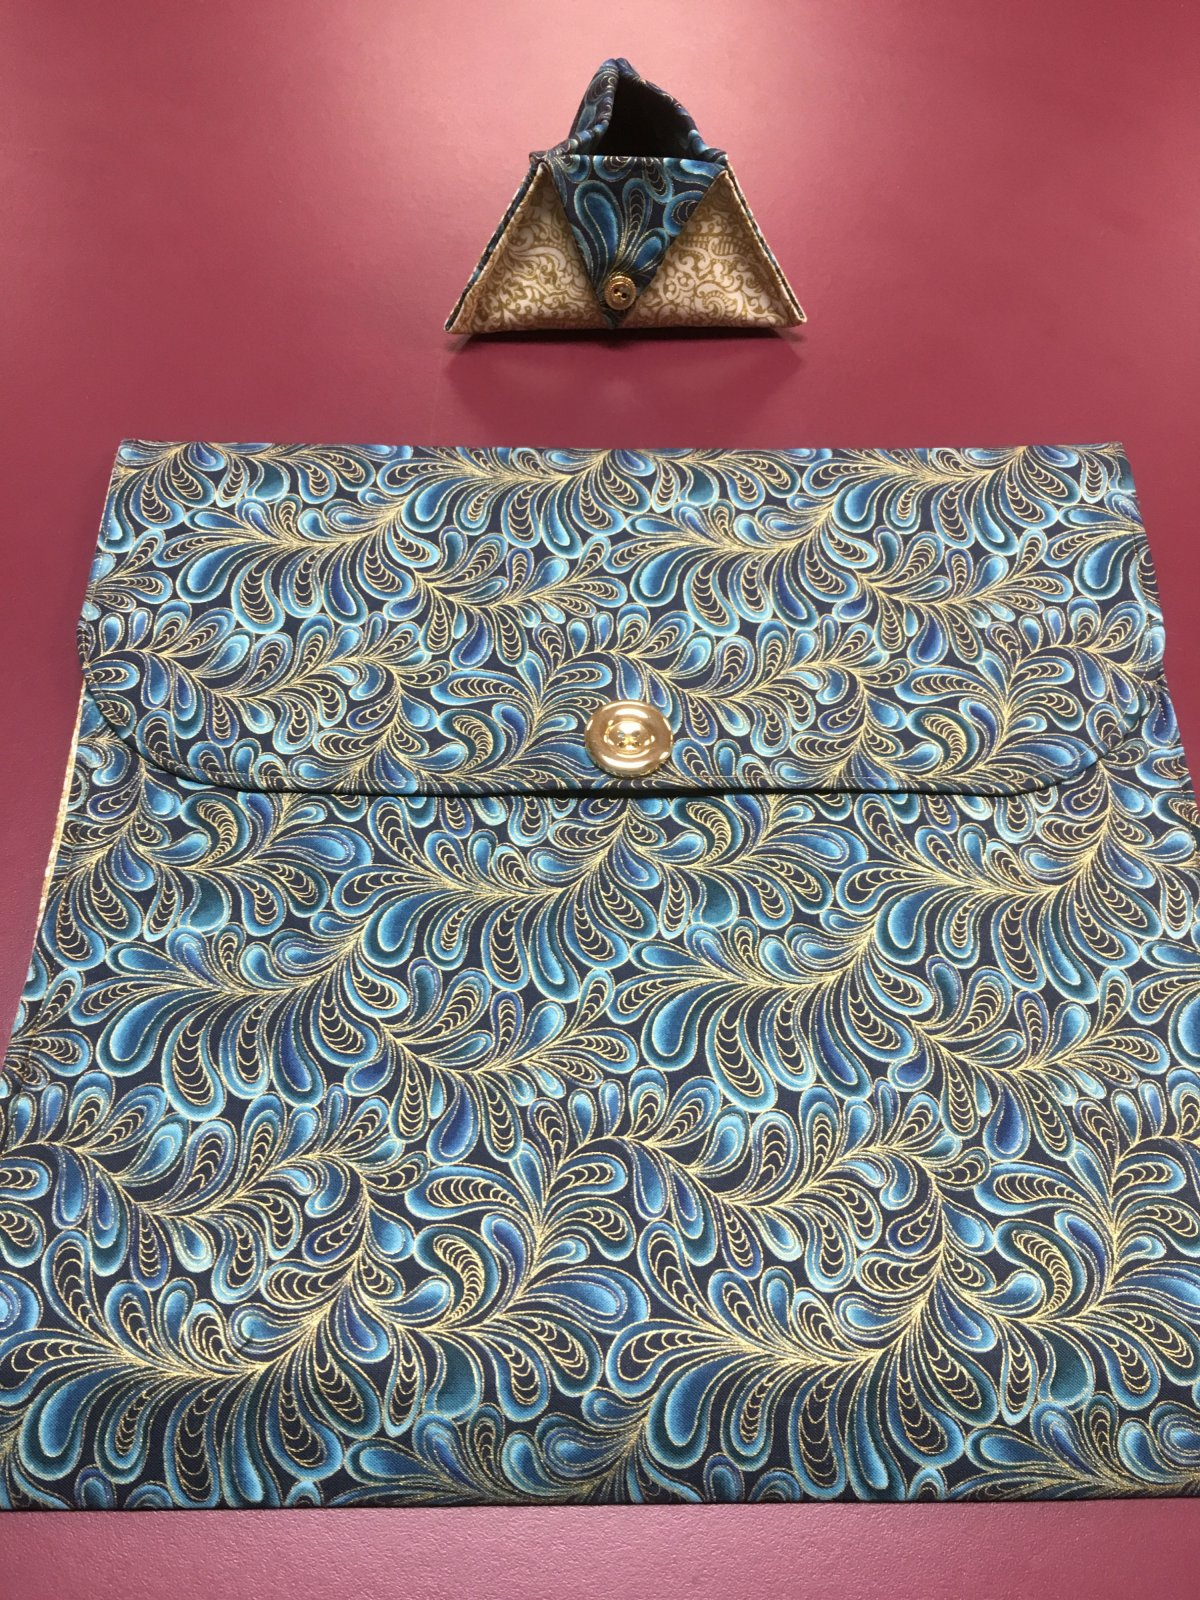 Project bag and ort bag - Navy, Teal, and Gold 14 x 13.25